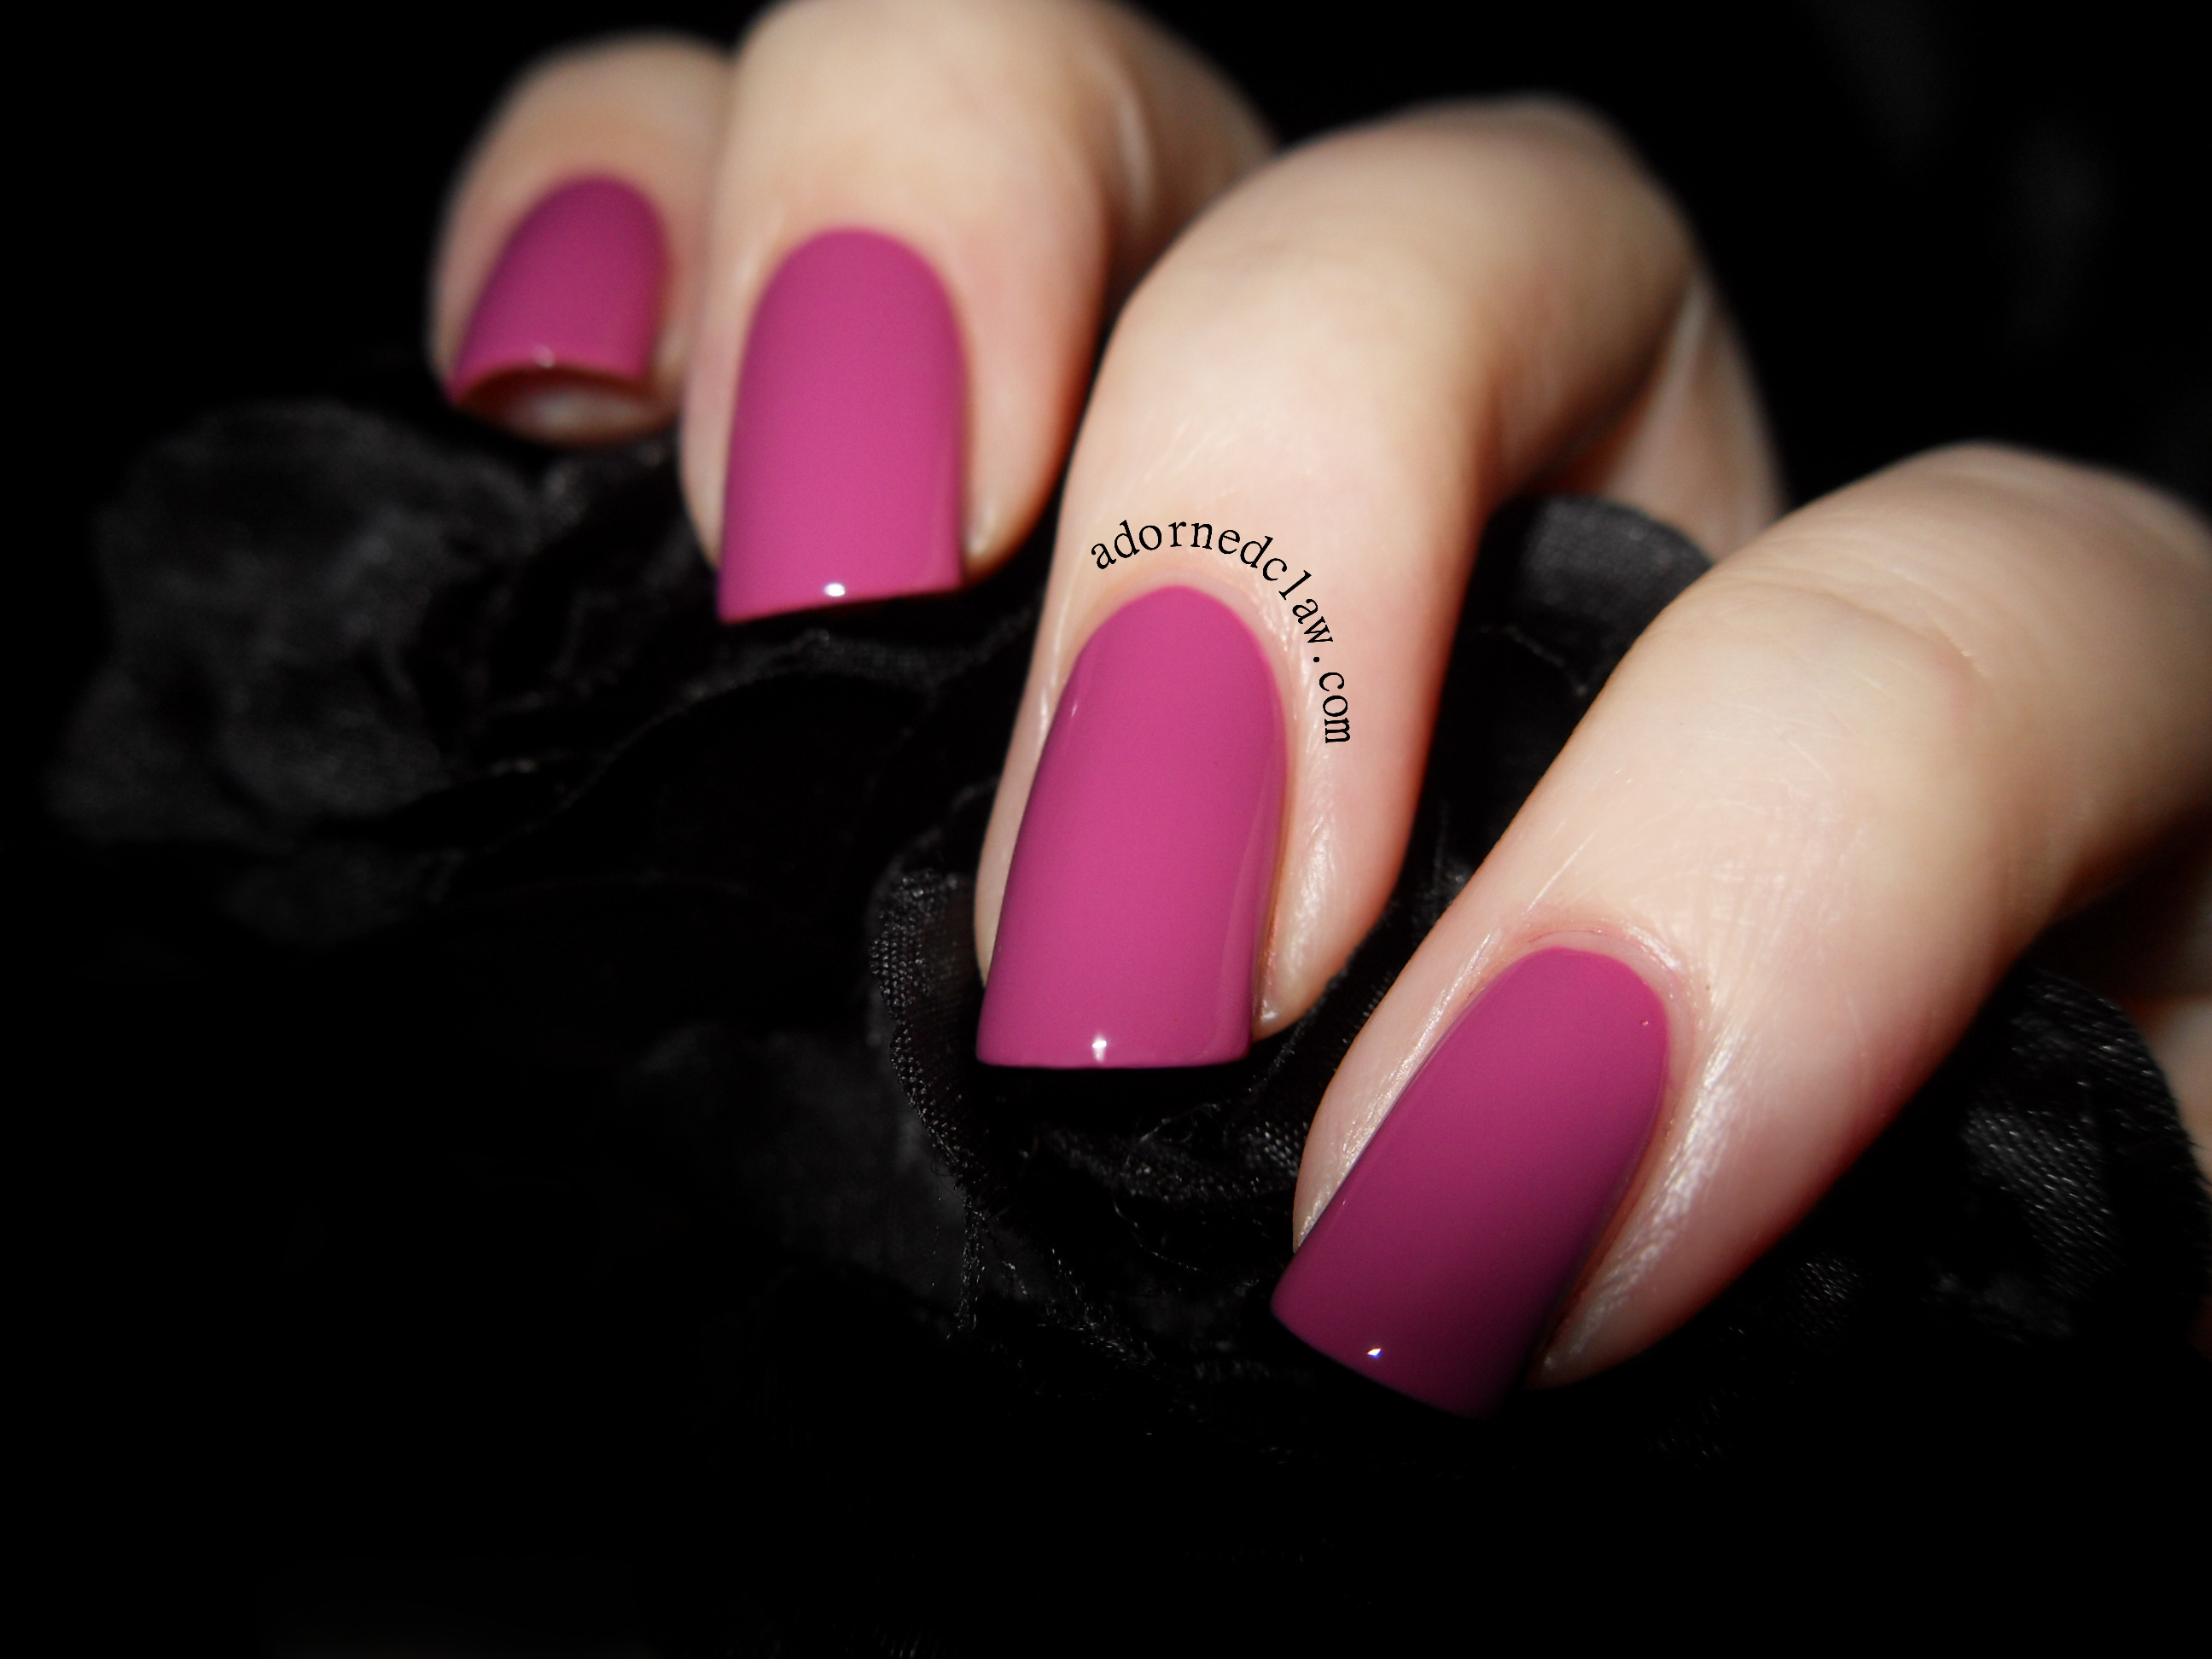 Vintage Nail Polish The Adorned Claw